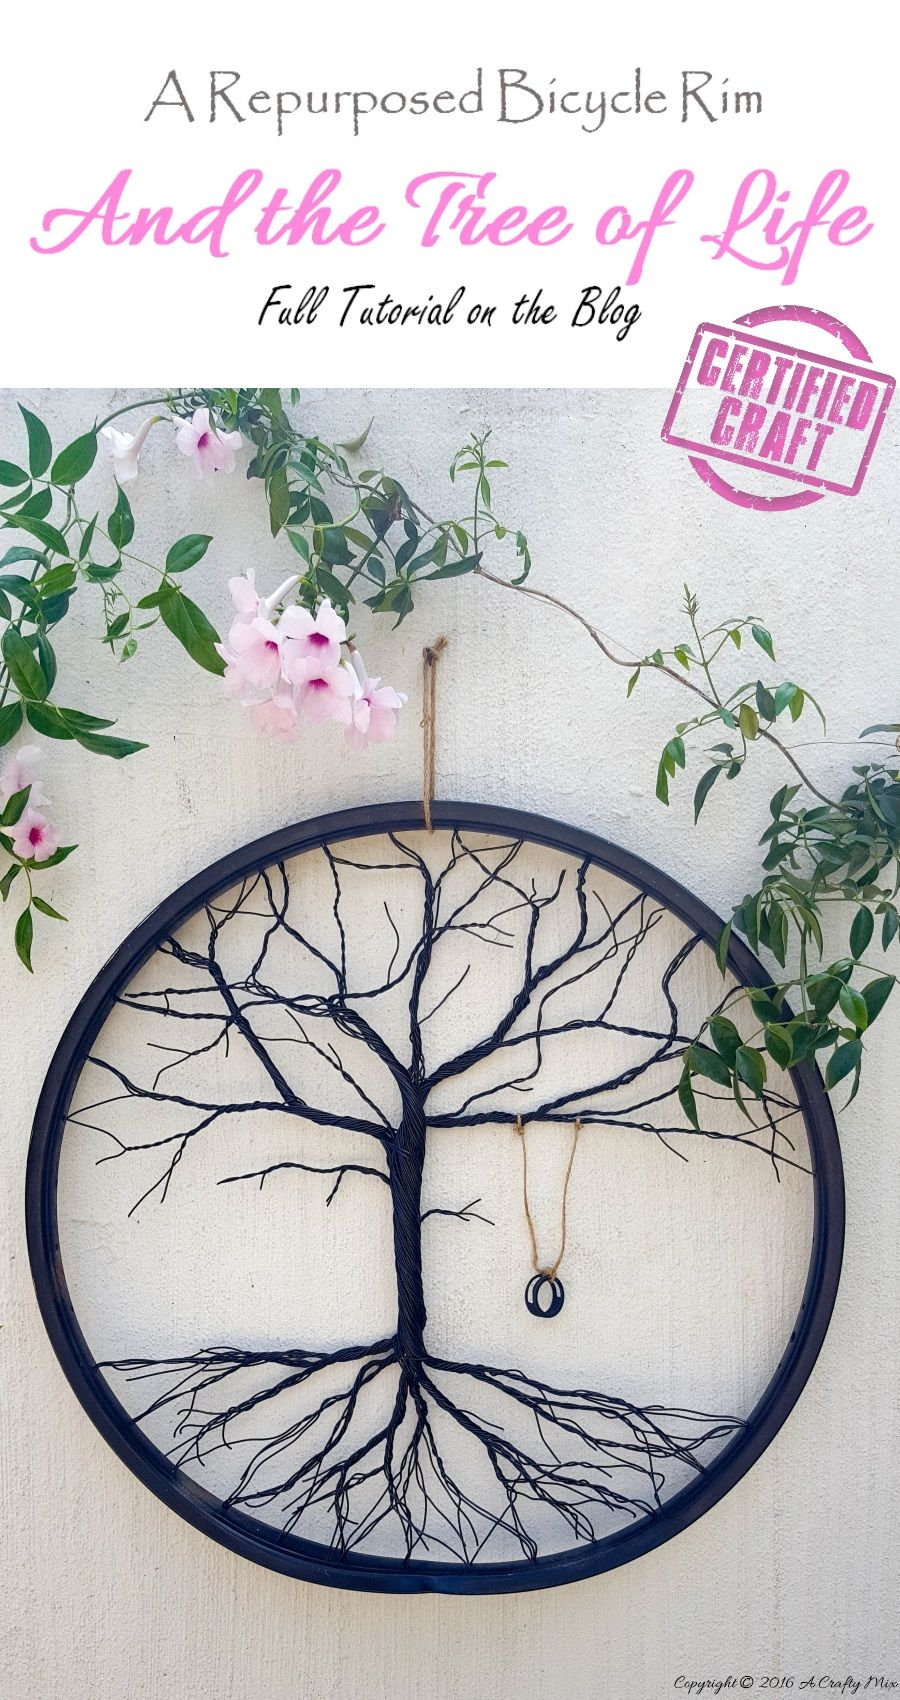 Re-purpose a Bicycle Wheel to Make a Tree of Life | Pinterest ...